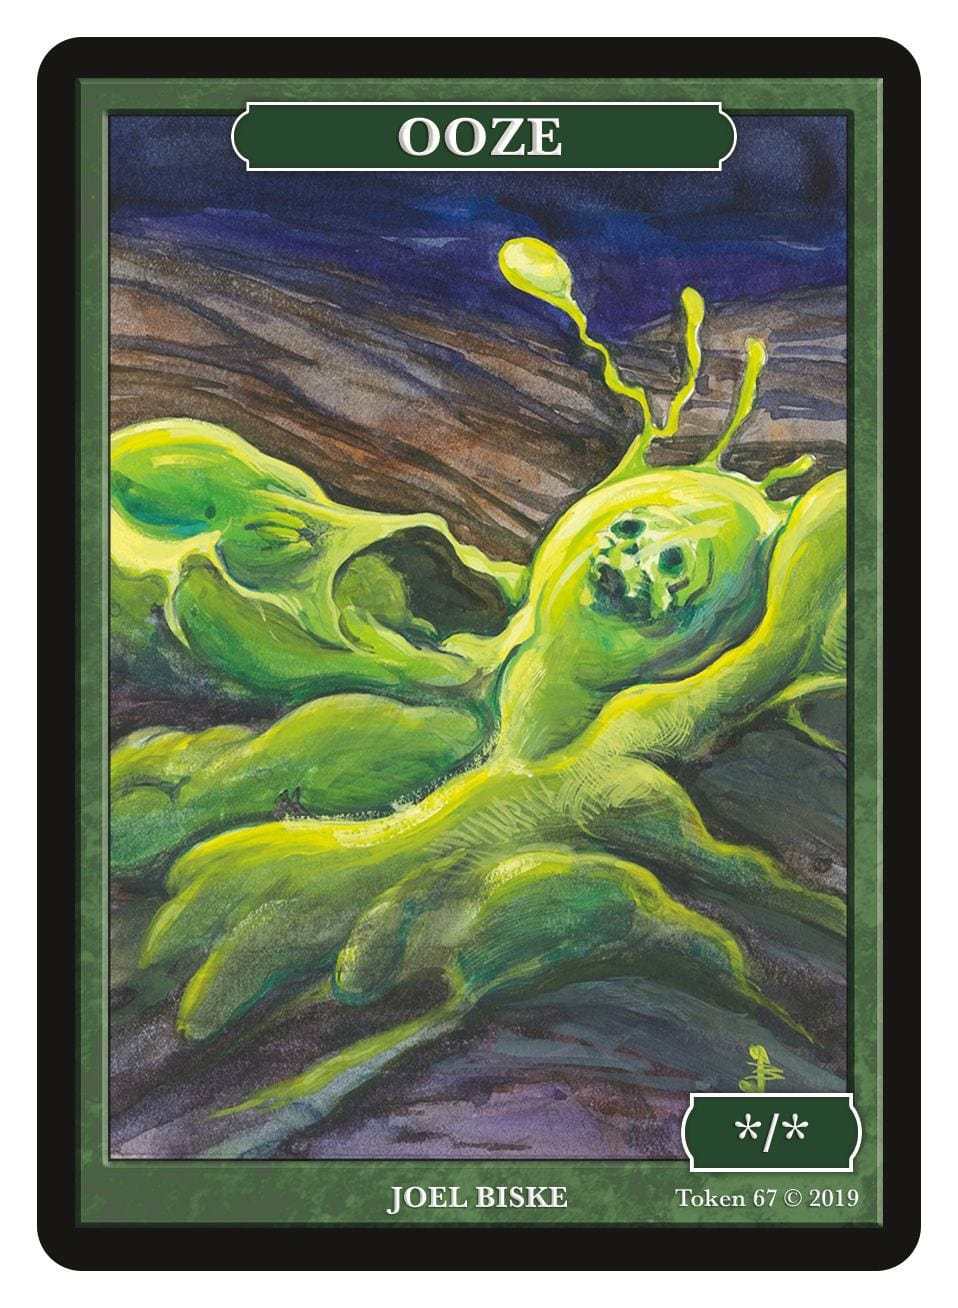 Ooze Token (*/*) by Joel Biske